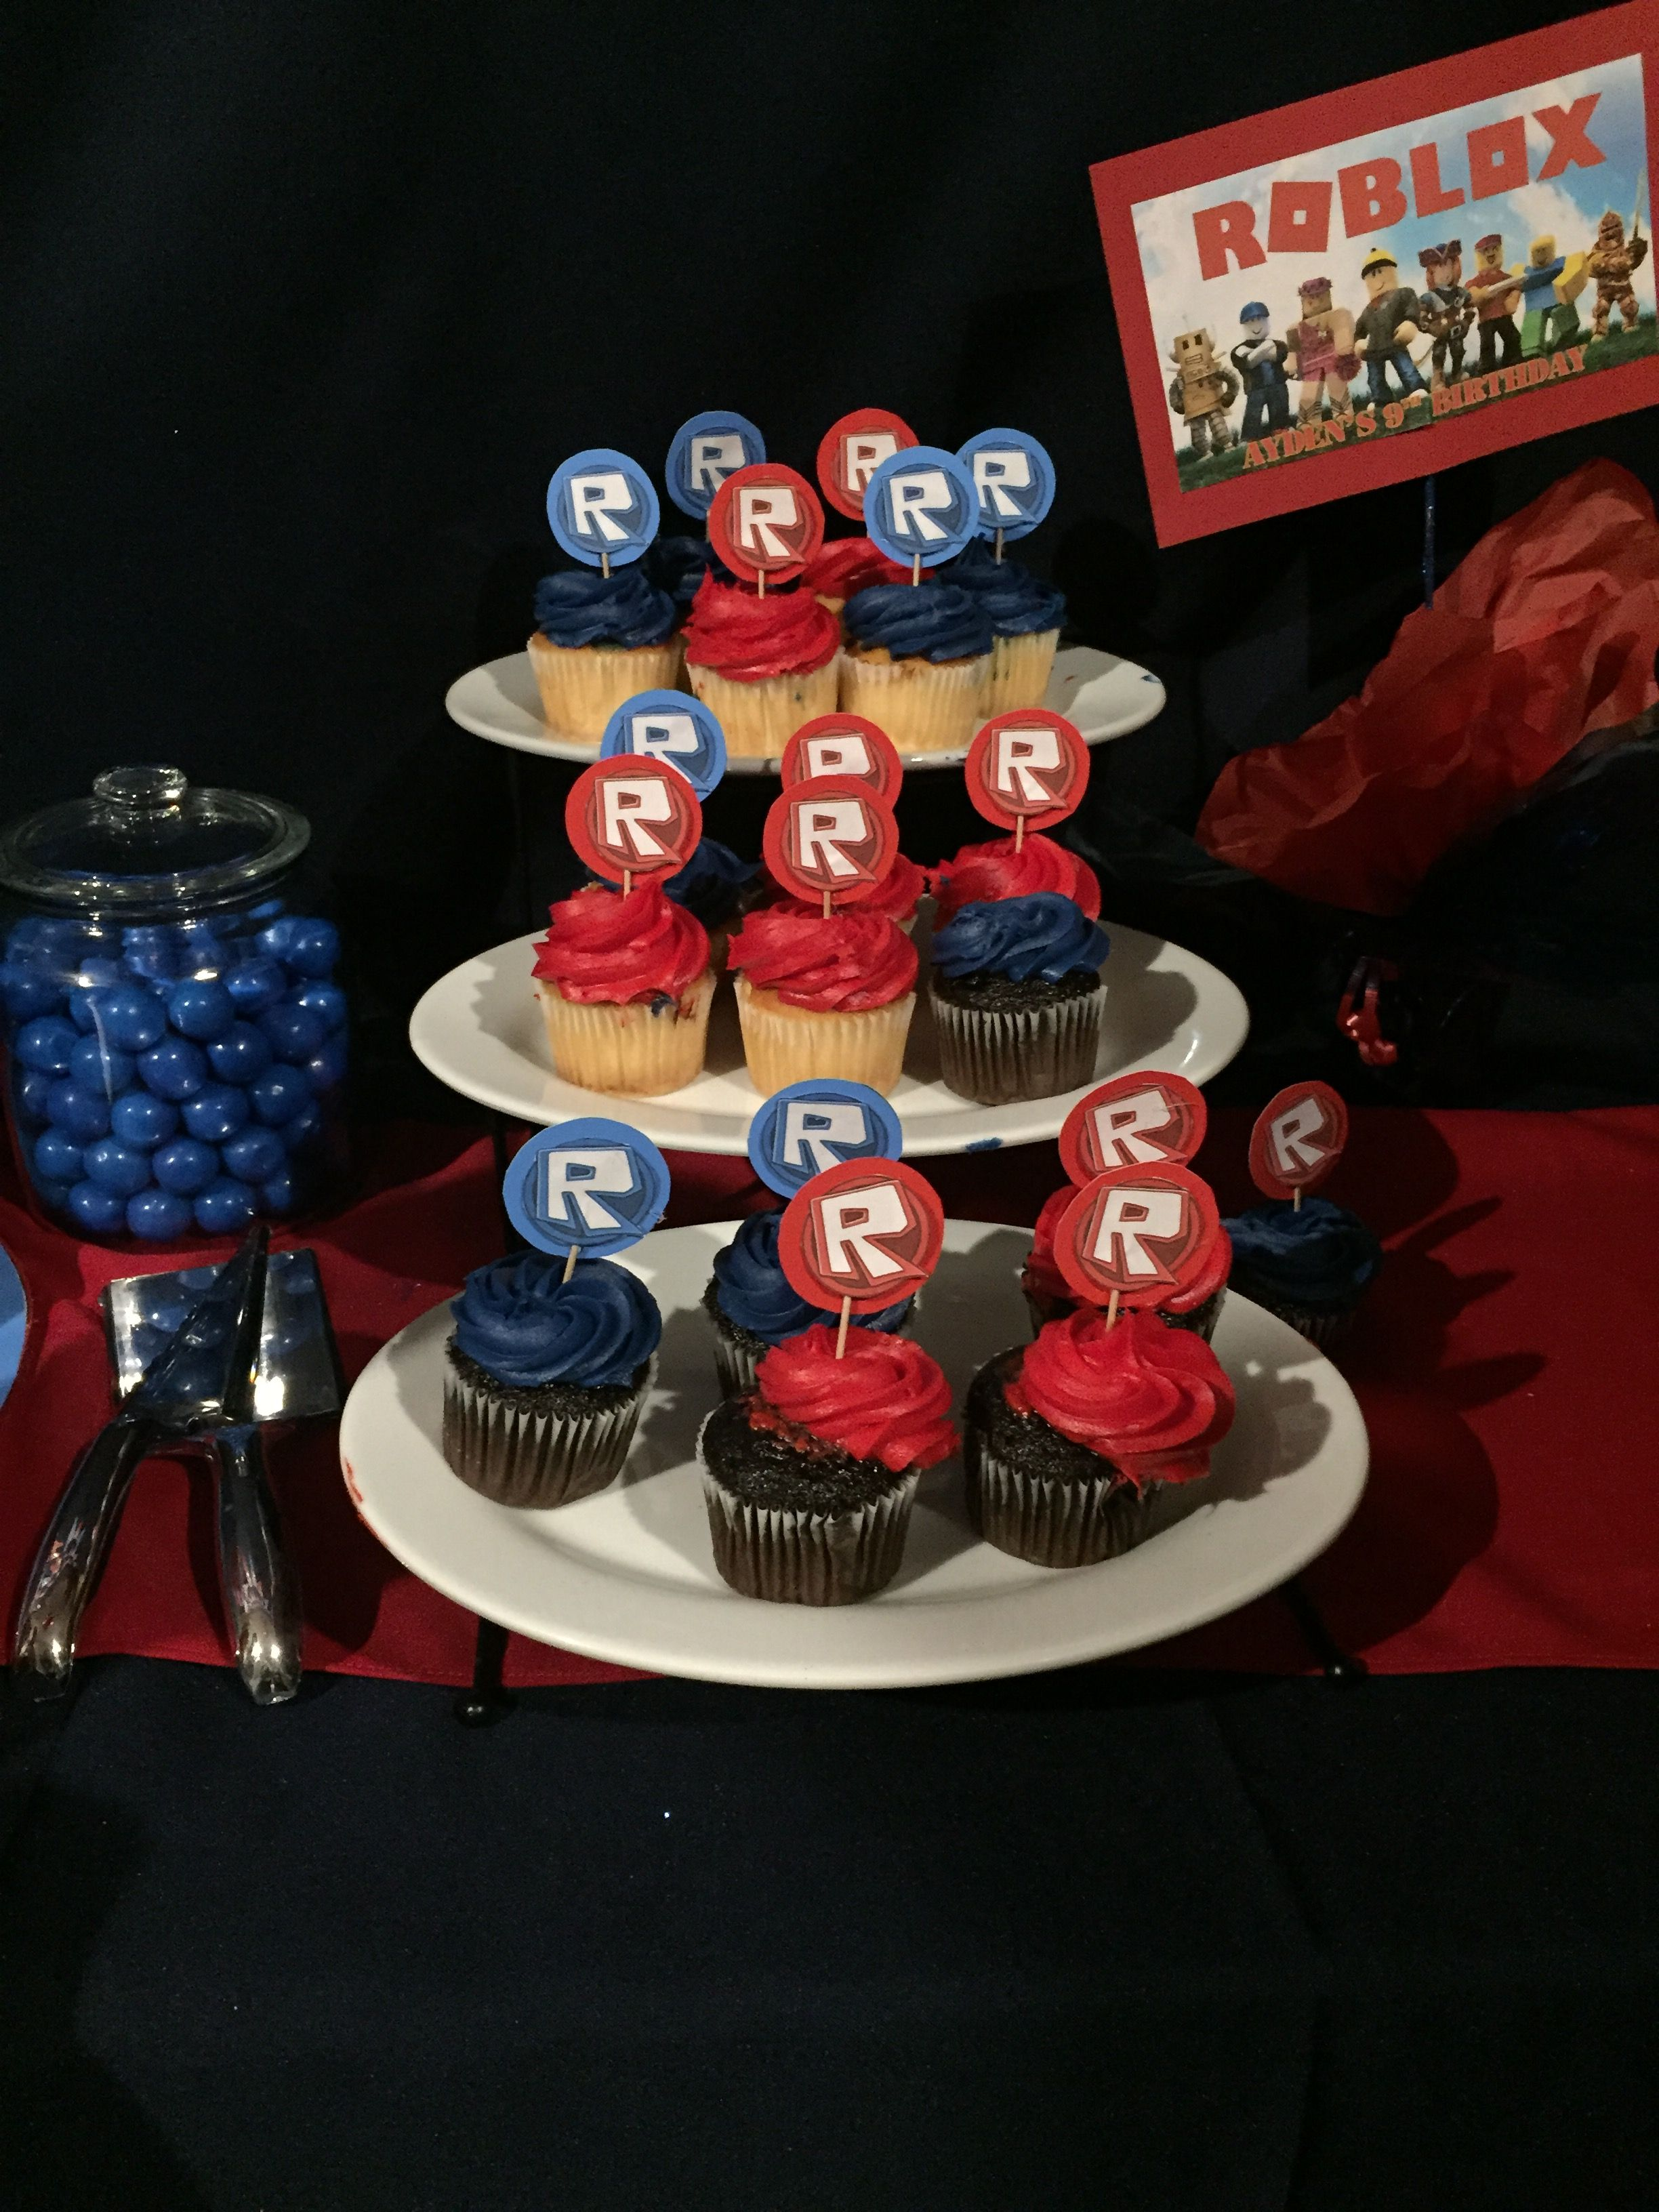 Roblox cupcakes | Roblox party in 2019 | Roblox birthday